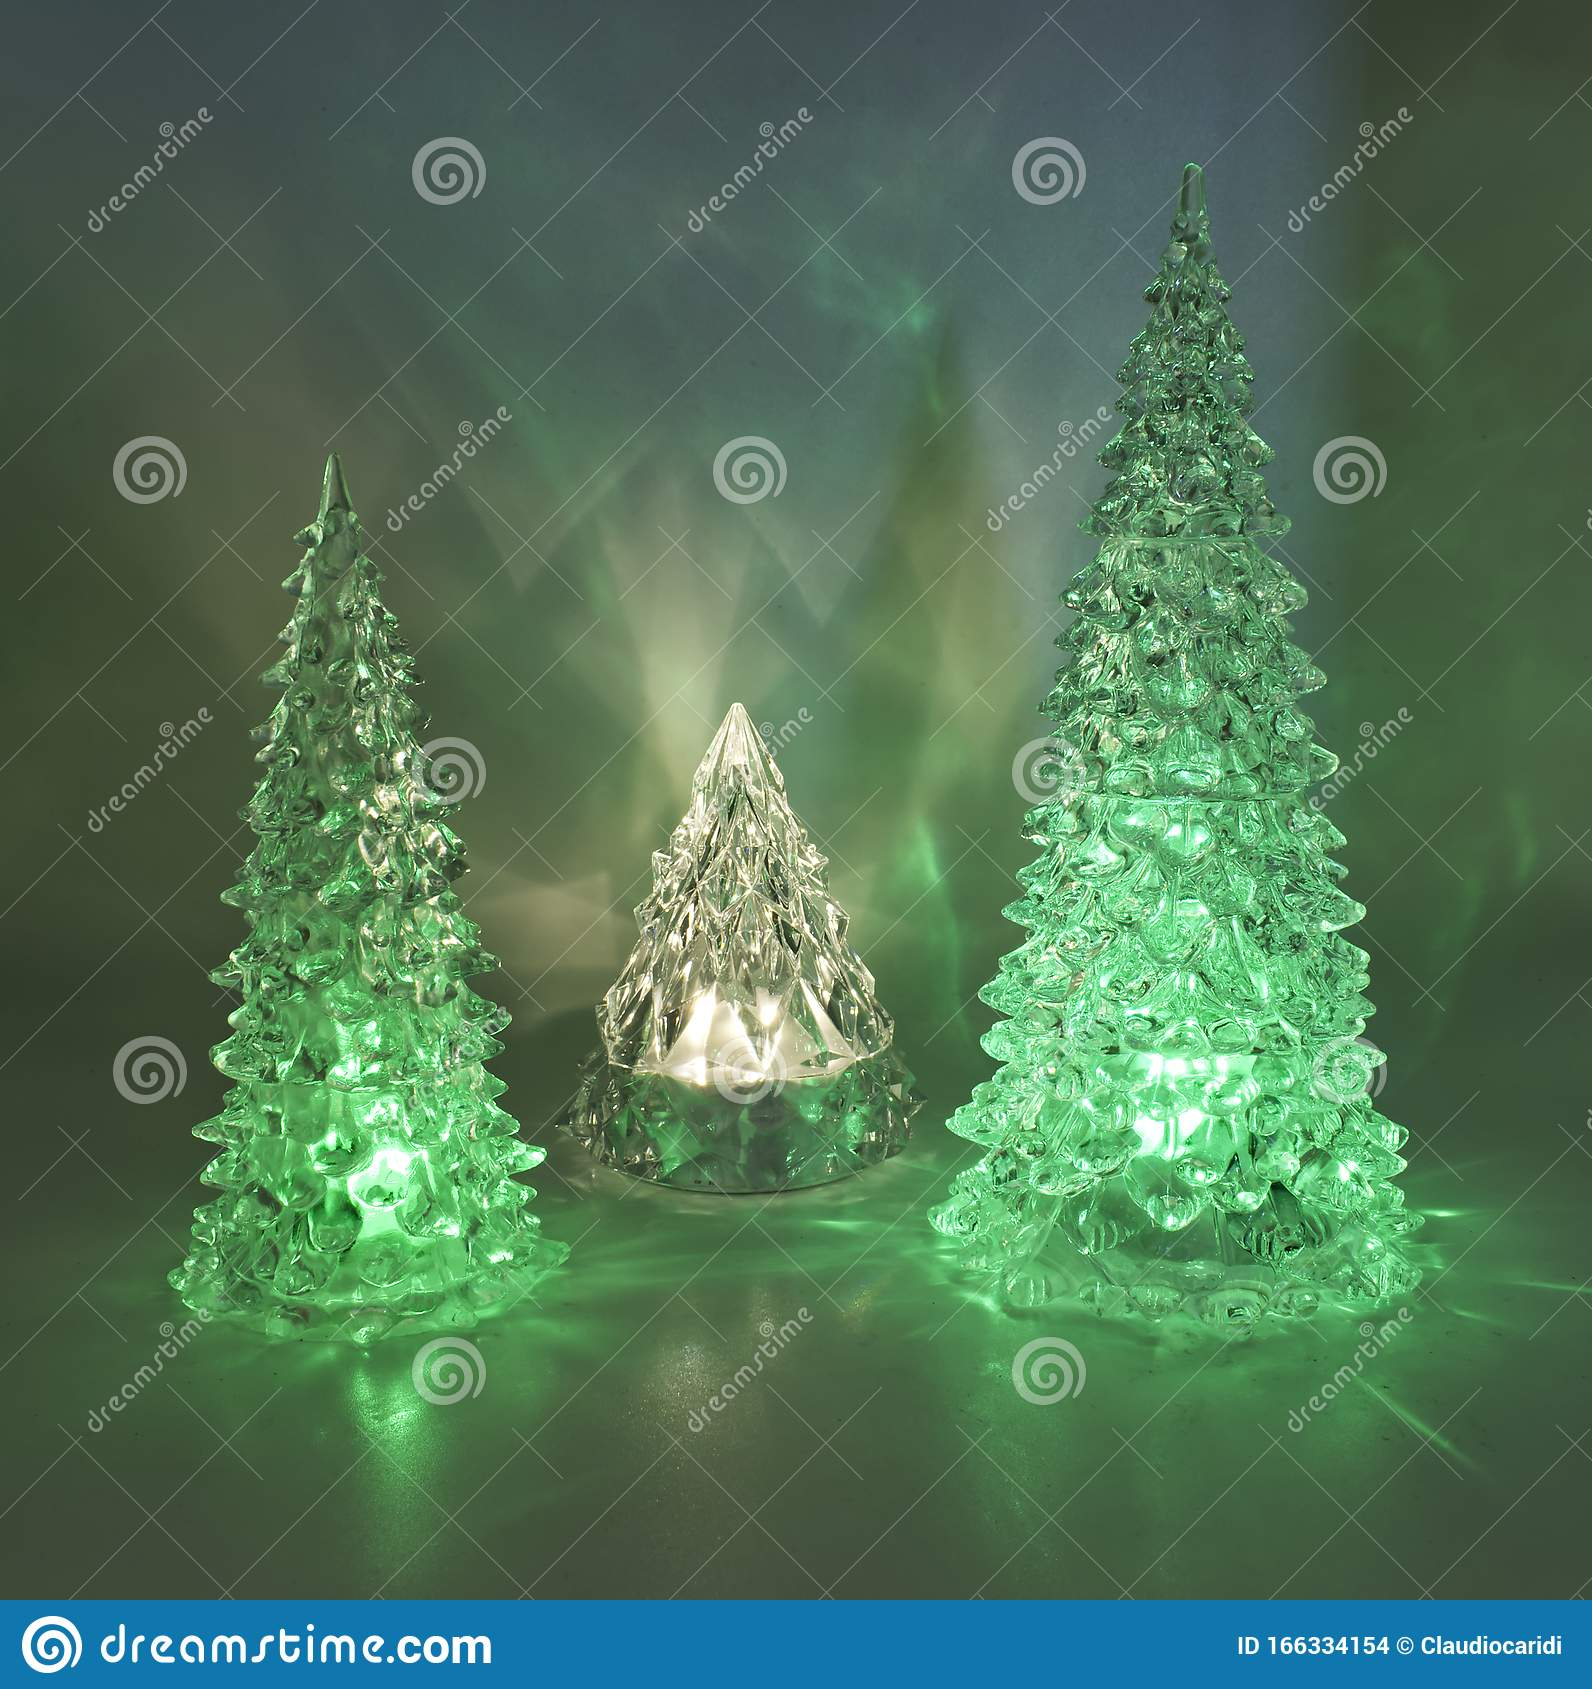 Brilliant And Colored Christmas Tree Lights Stock Photo Image Of Flashing Happy 166334154